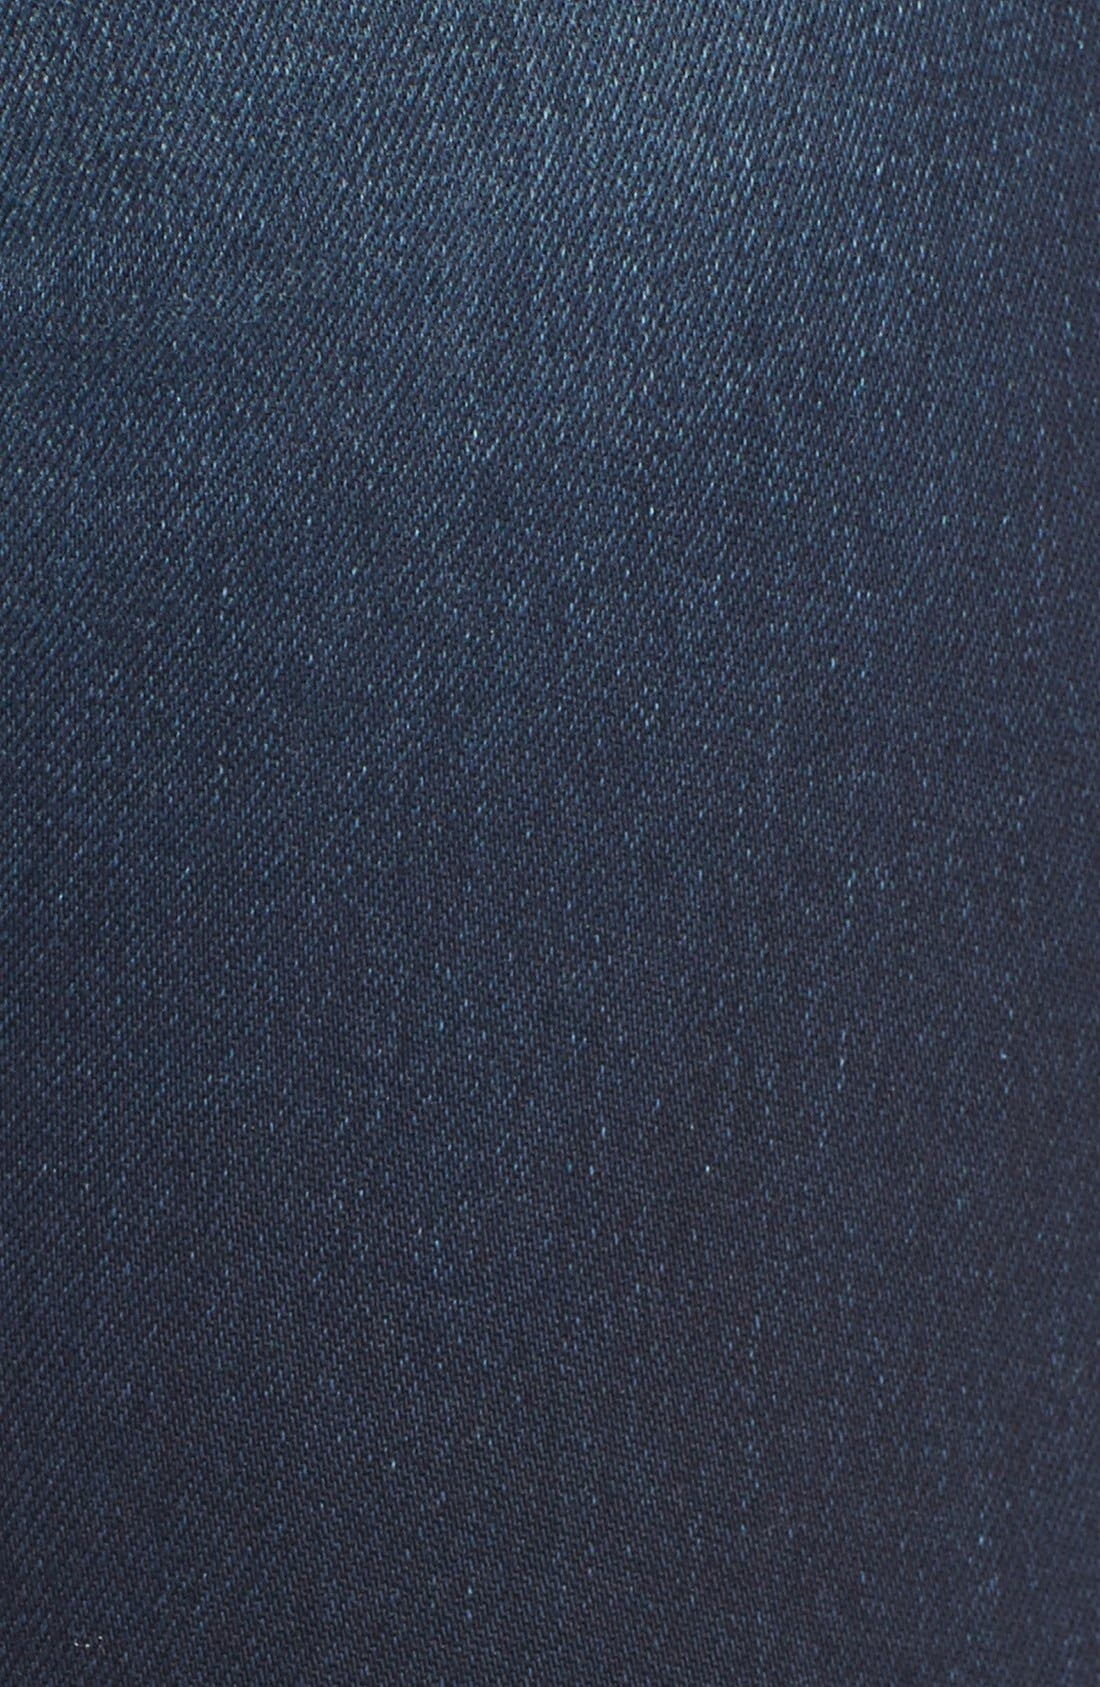 Alternate Image 5  - KUT from the Kloth 'Diana' Stretch Skinny Jeans (Brisk)